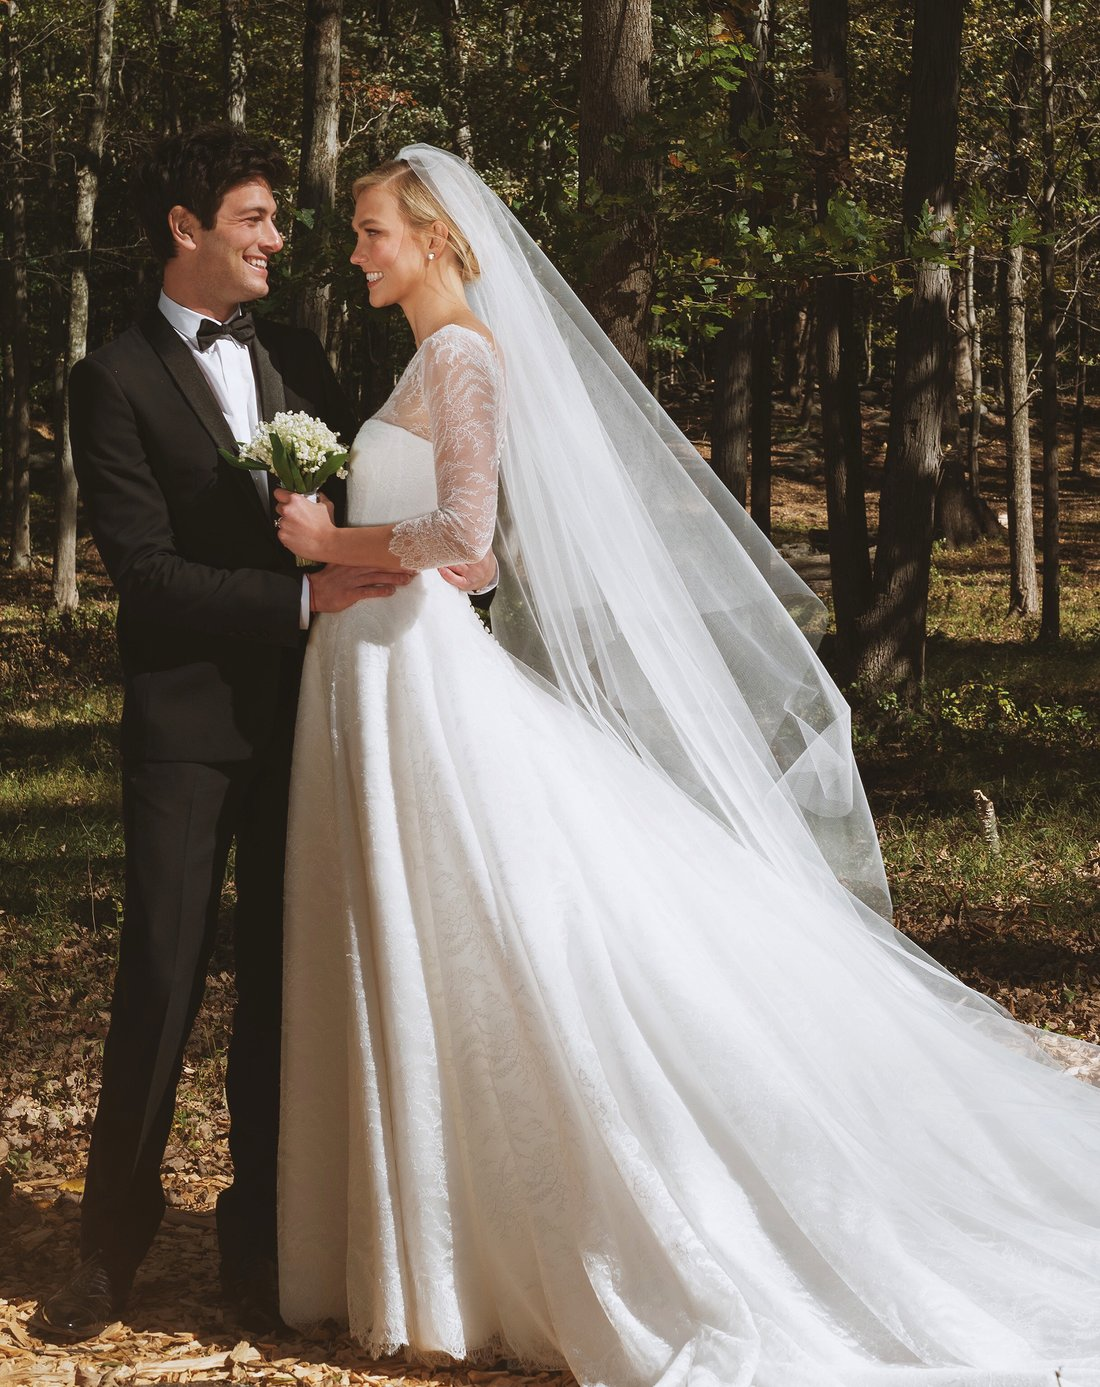 Karlie Kloss and Joshua Kushner get married in New York